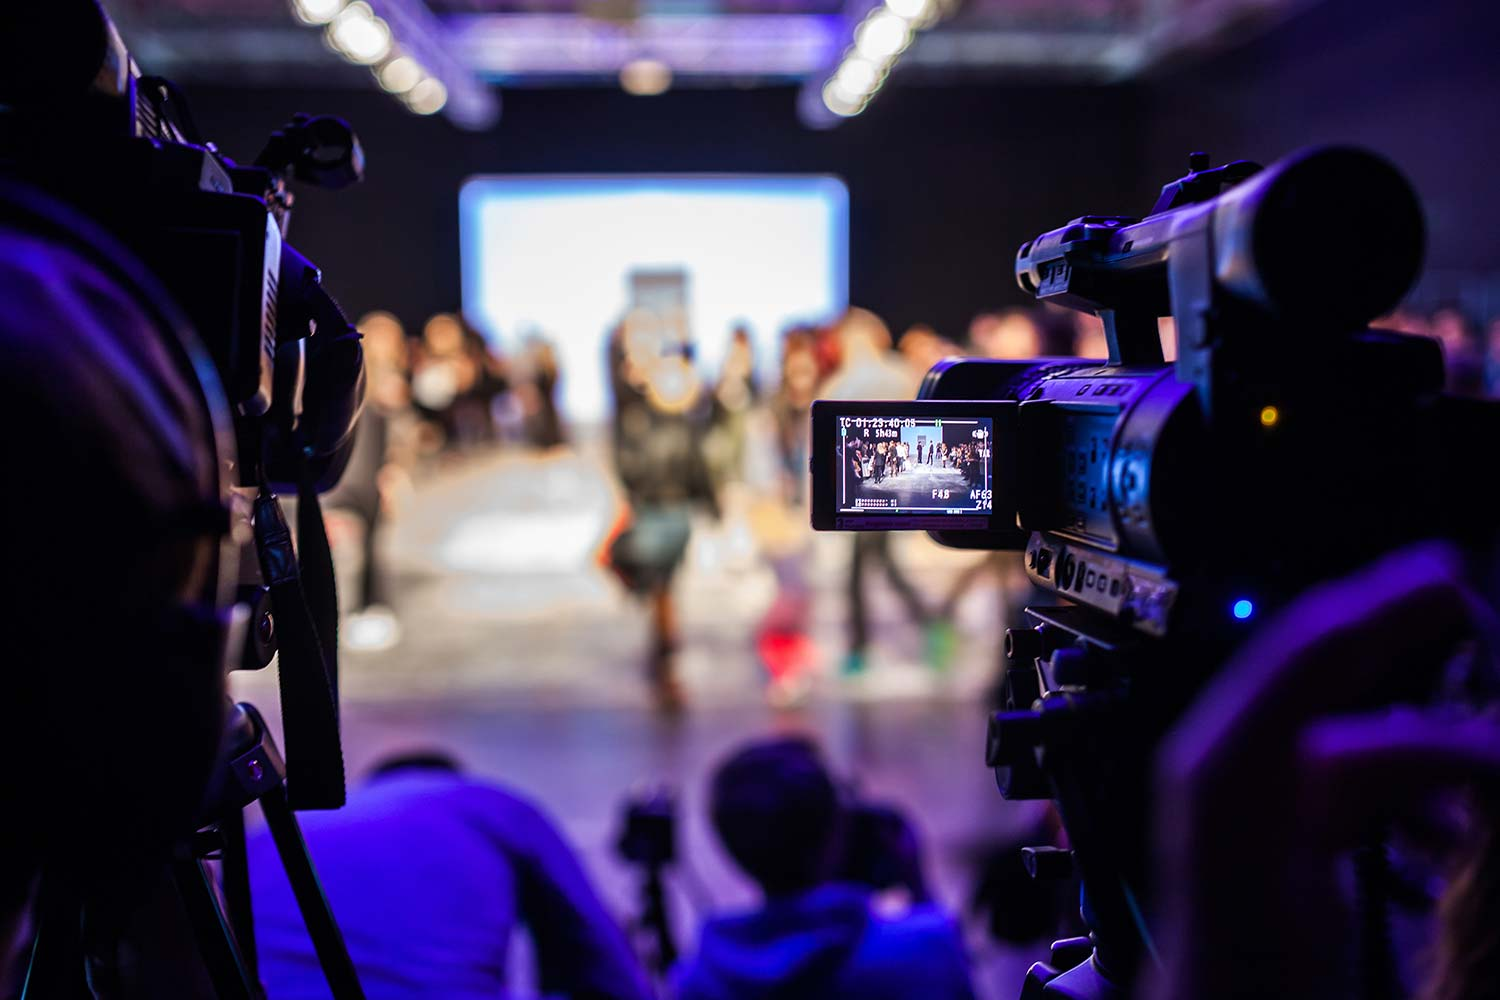 8 Considerations for Hybrid Events